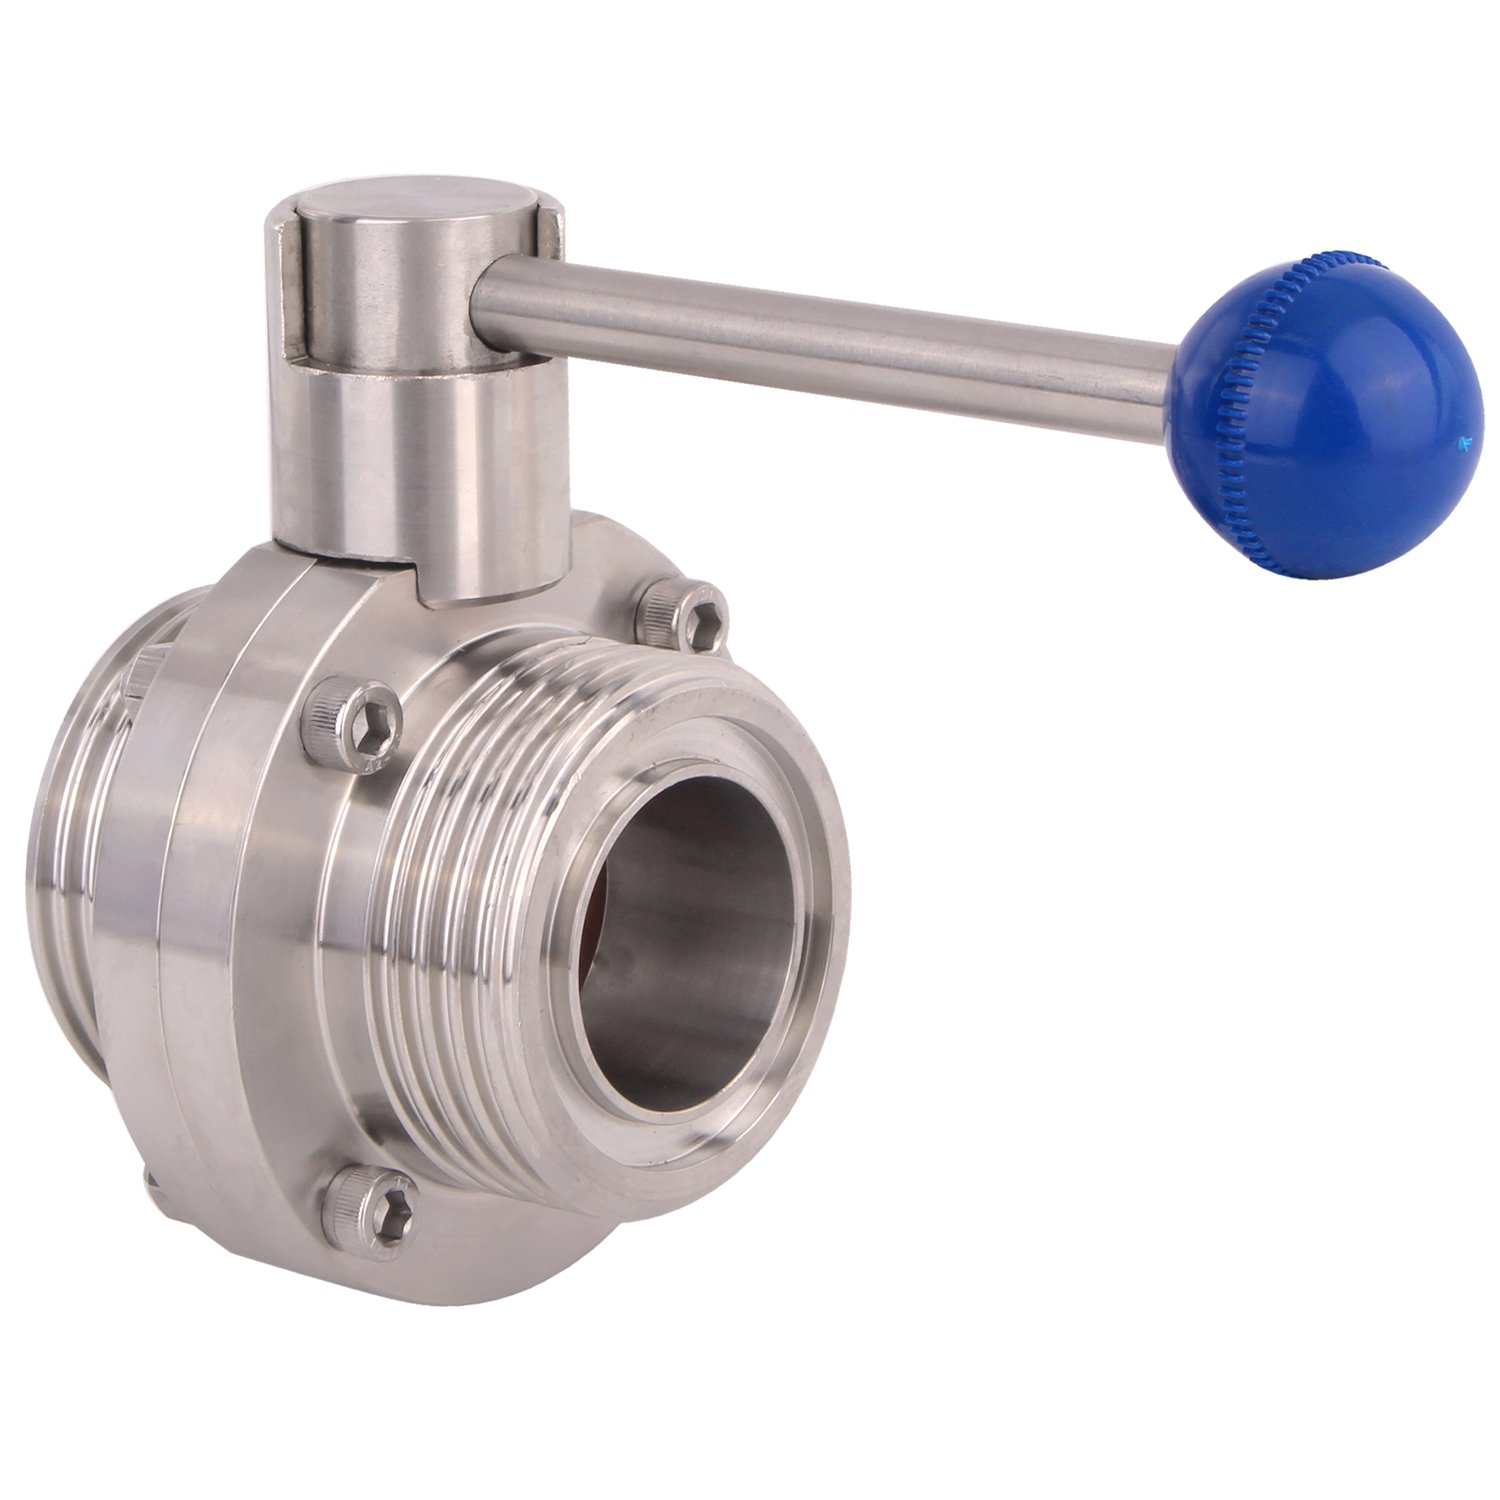 DERNORD Butterfly Valve with Pull Handle Stainless Steel 304 Sanitary Tri Clamp Clover 2 Inch SMS Threaded Type